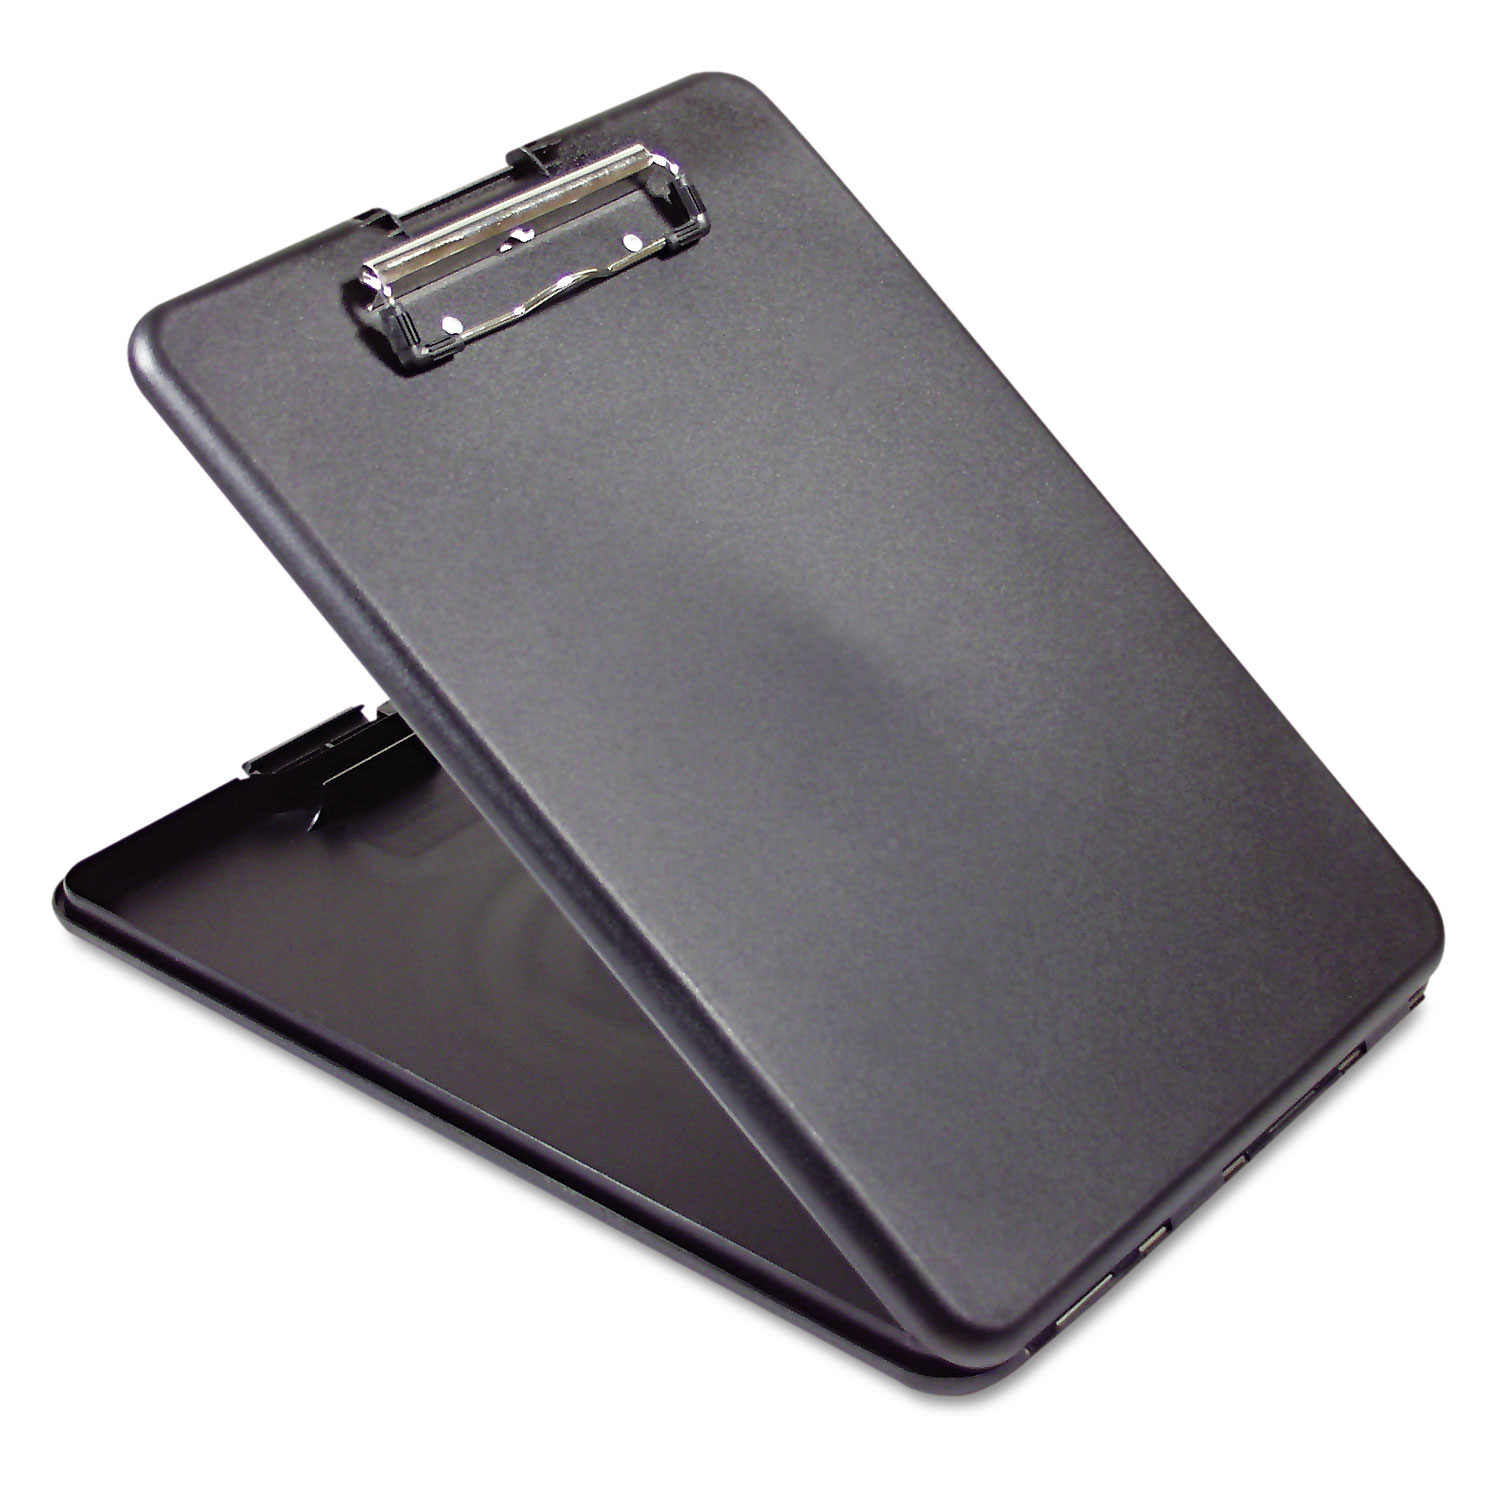 """SlimMate Storage Clipboard, 1/2"""" Clip Capacity, Holds 8 1/2 x 11 Sheets, Black"""